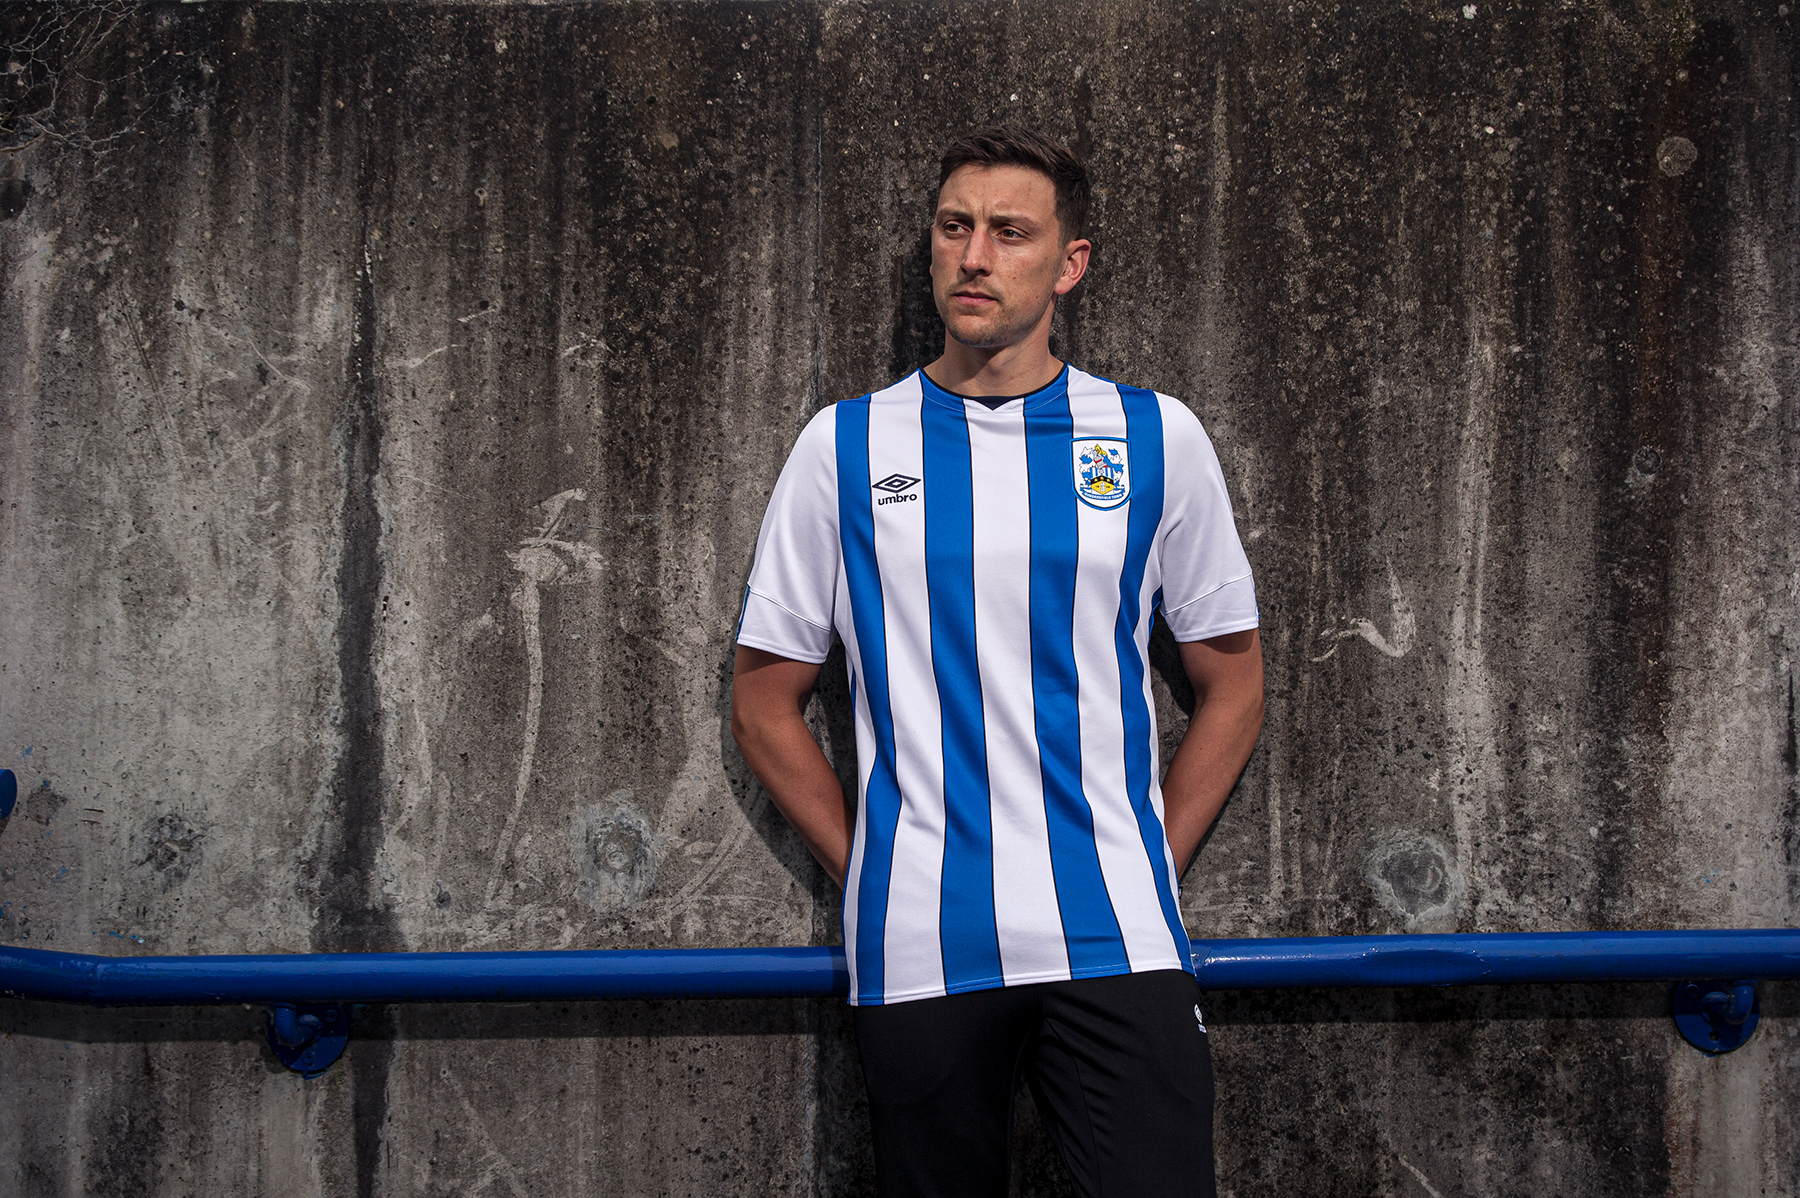 Huddersfield Town reveal their new kit - without a sponsor